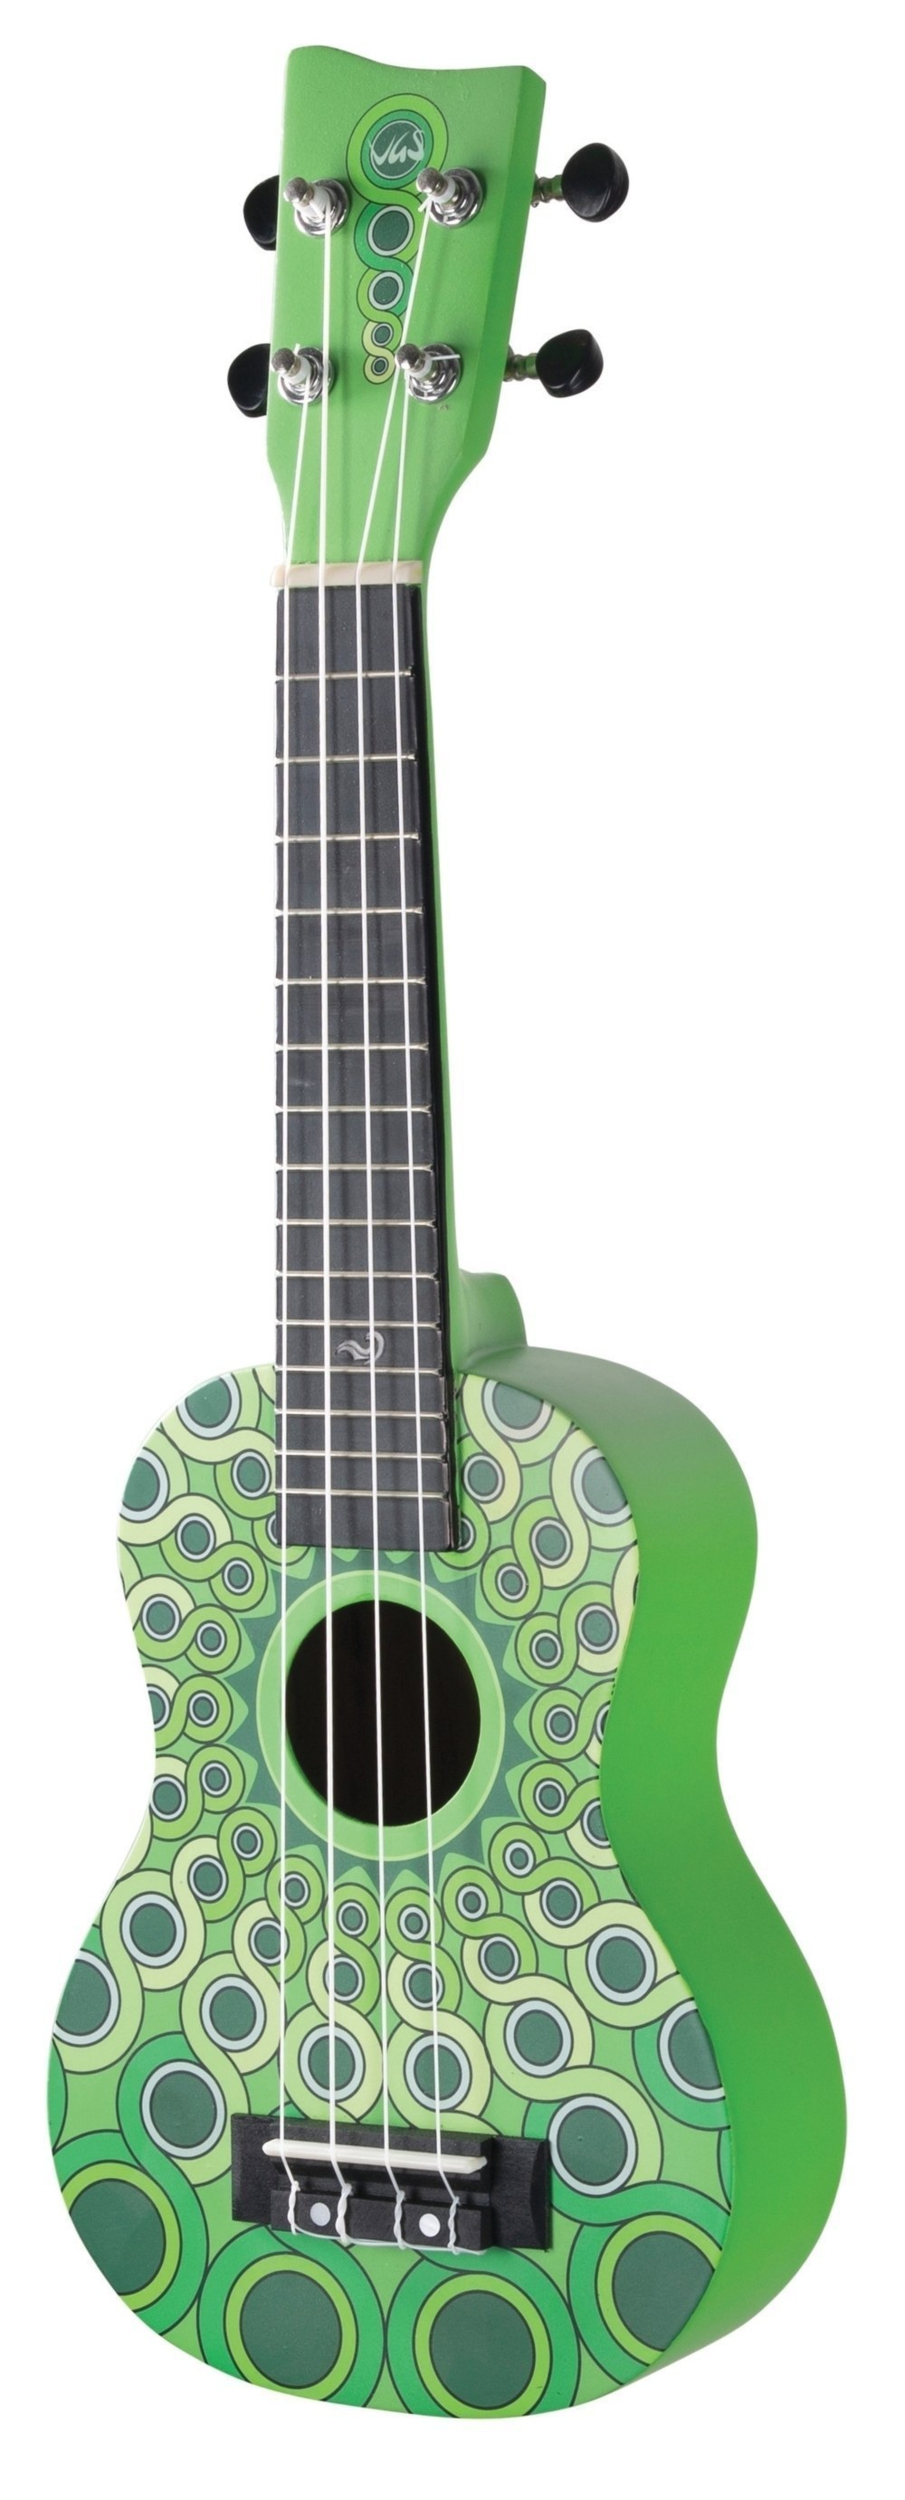 VGS UKULÉLÉ SOPRANO MANOA W-SO-MG VG511.224